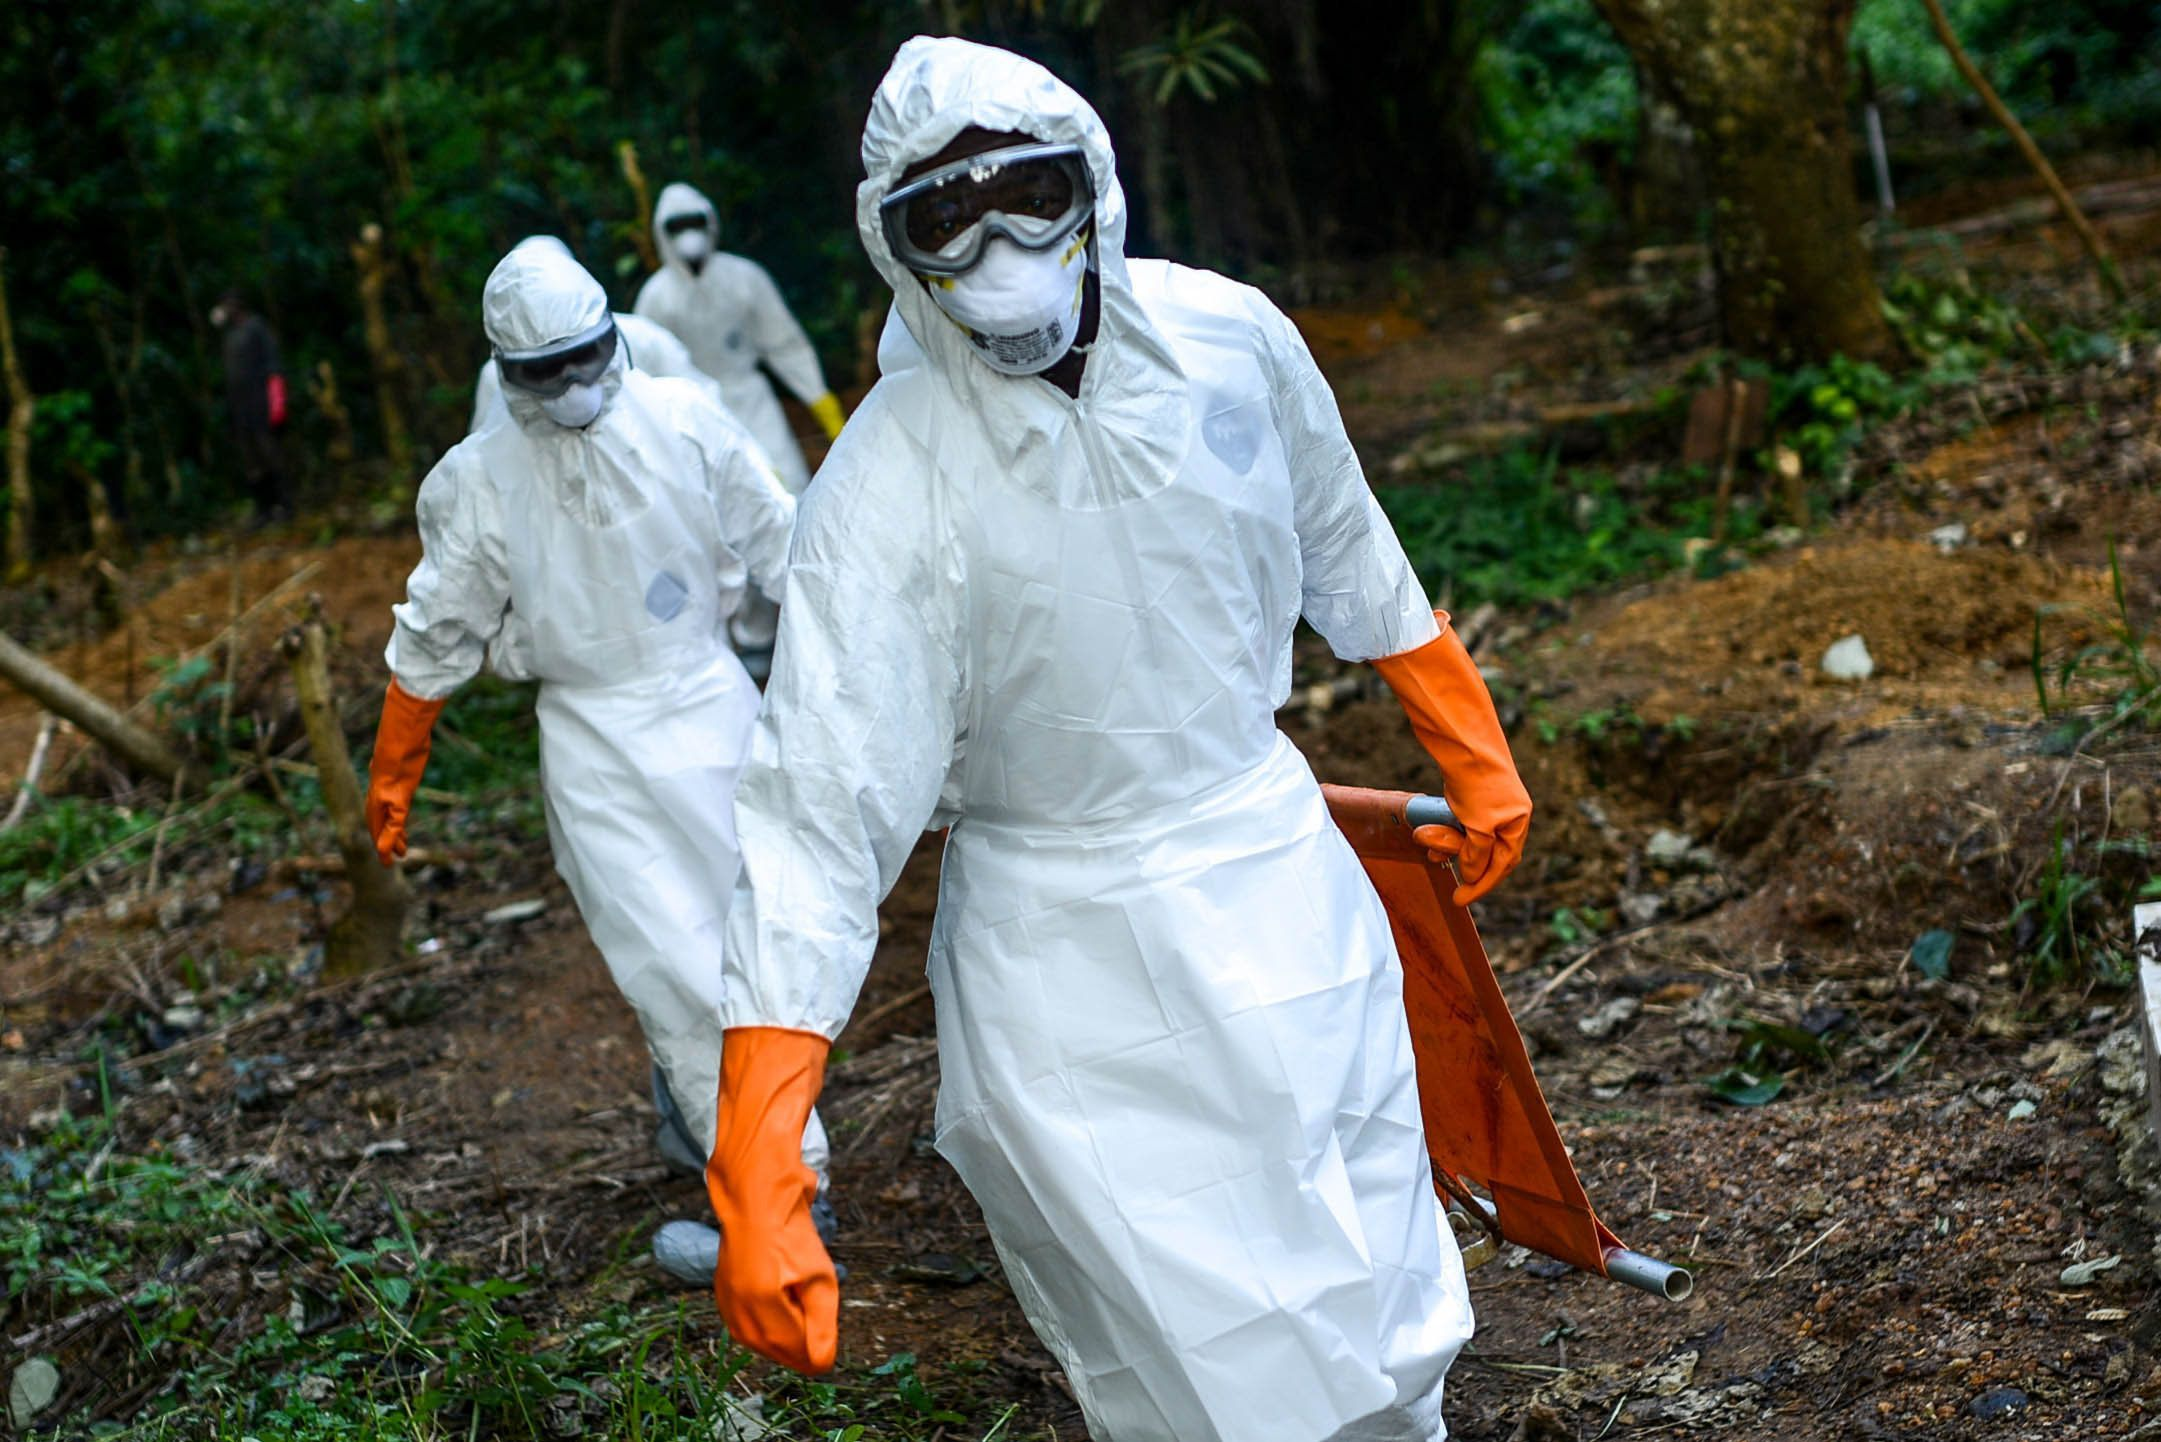 KENEMA, SIERRA LEONE - AUGUST 26:  Members of a volunteer medical team wear special uniforms for the burial of 7 people, sterilized after dying due to the Ebola virus, in Kptema graveyard in Kenema, Sierra Leone on August 26, 2014. In recent months, Ebola  a contagious disease for which there is no known treatment or cure  has claimed at least 1429 lives in West Africa, mostly in Sierra Leone, Guinea and Liberia. (Photo by Mohammed Elshamy/Anadolu Agency/Gett Images)